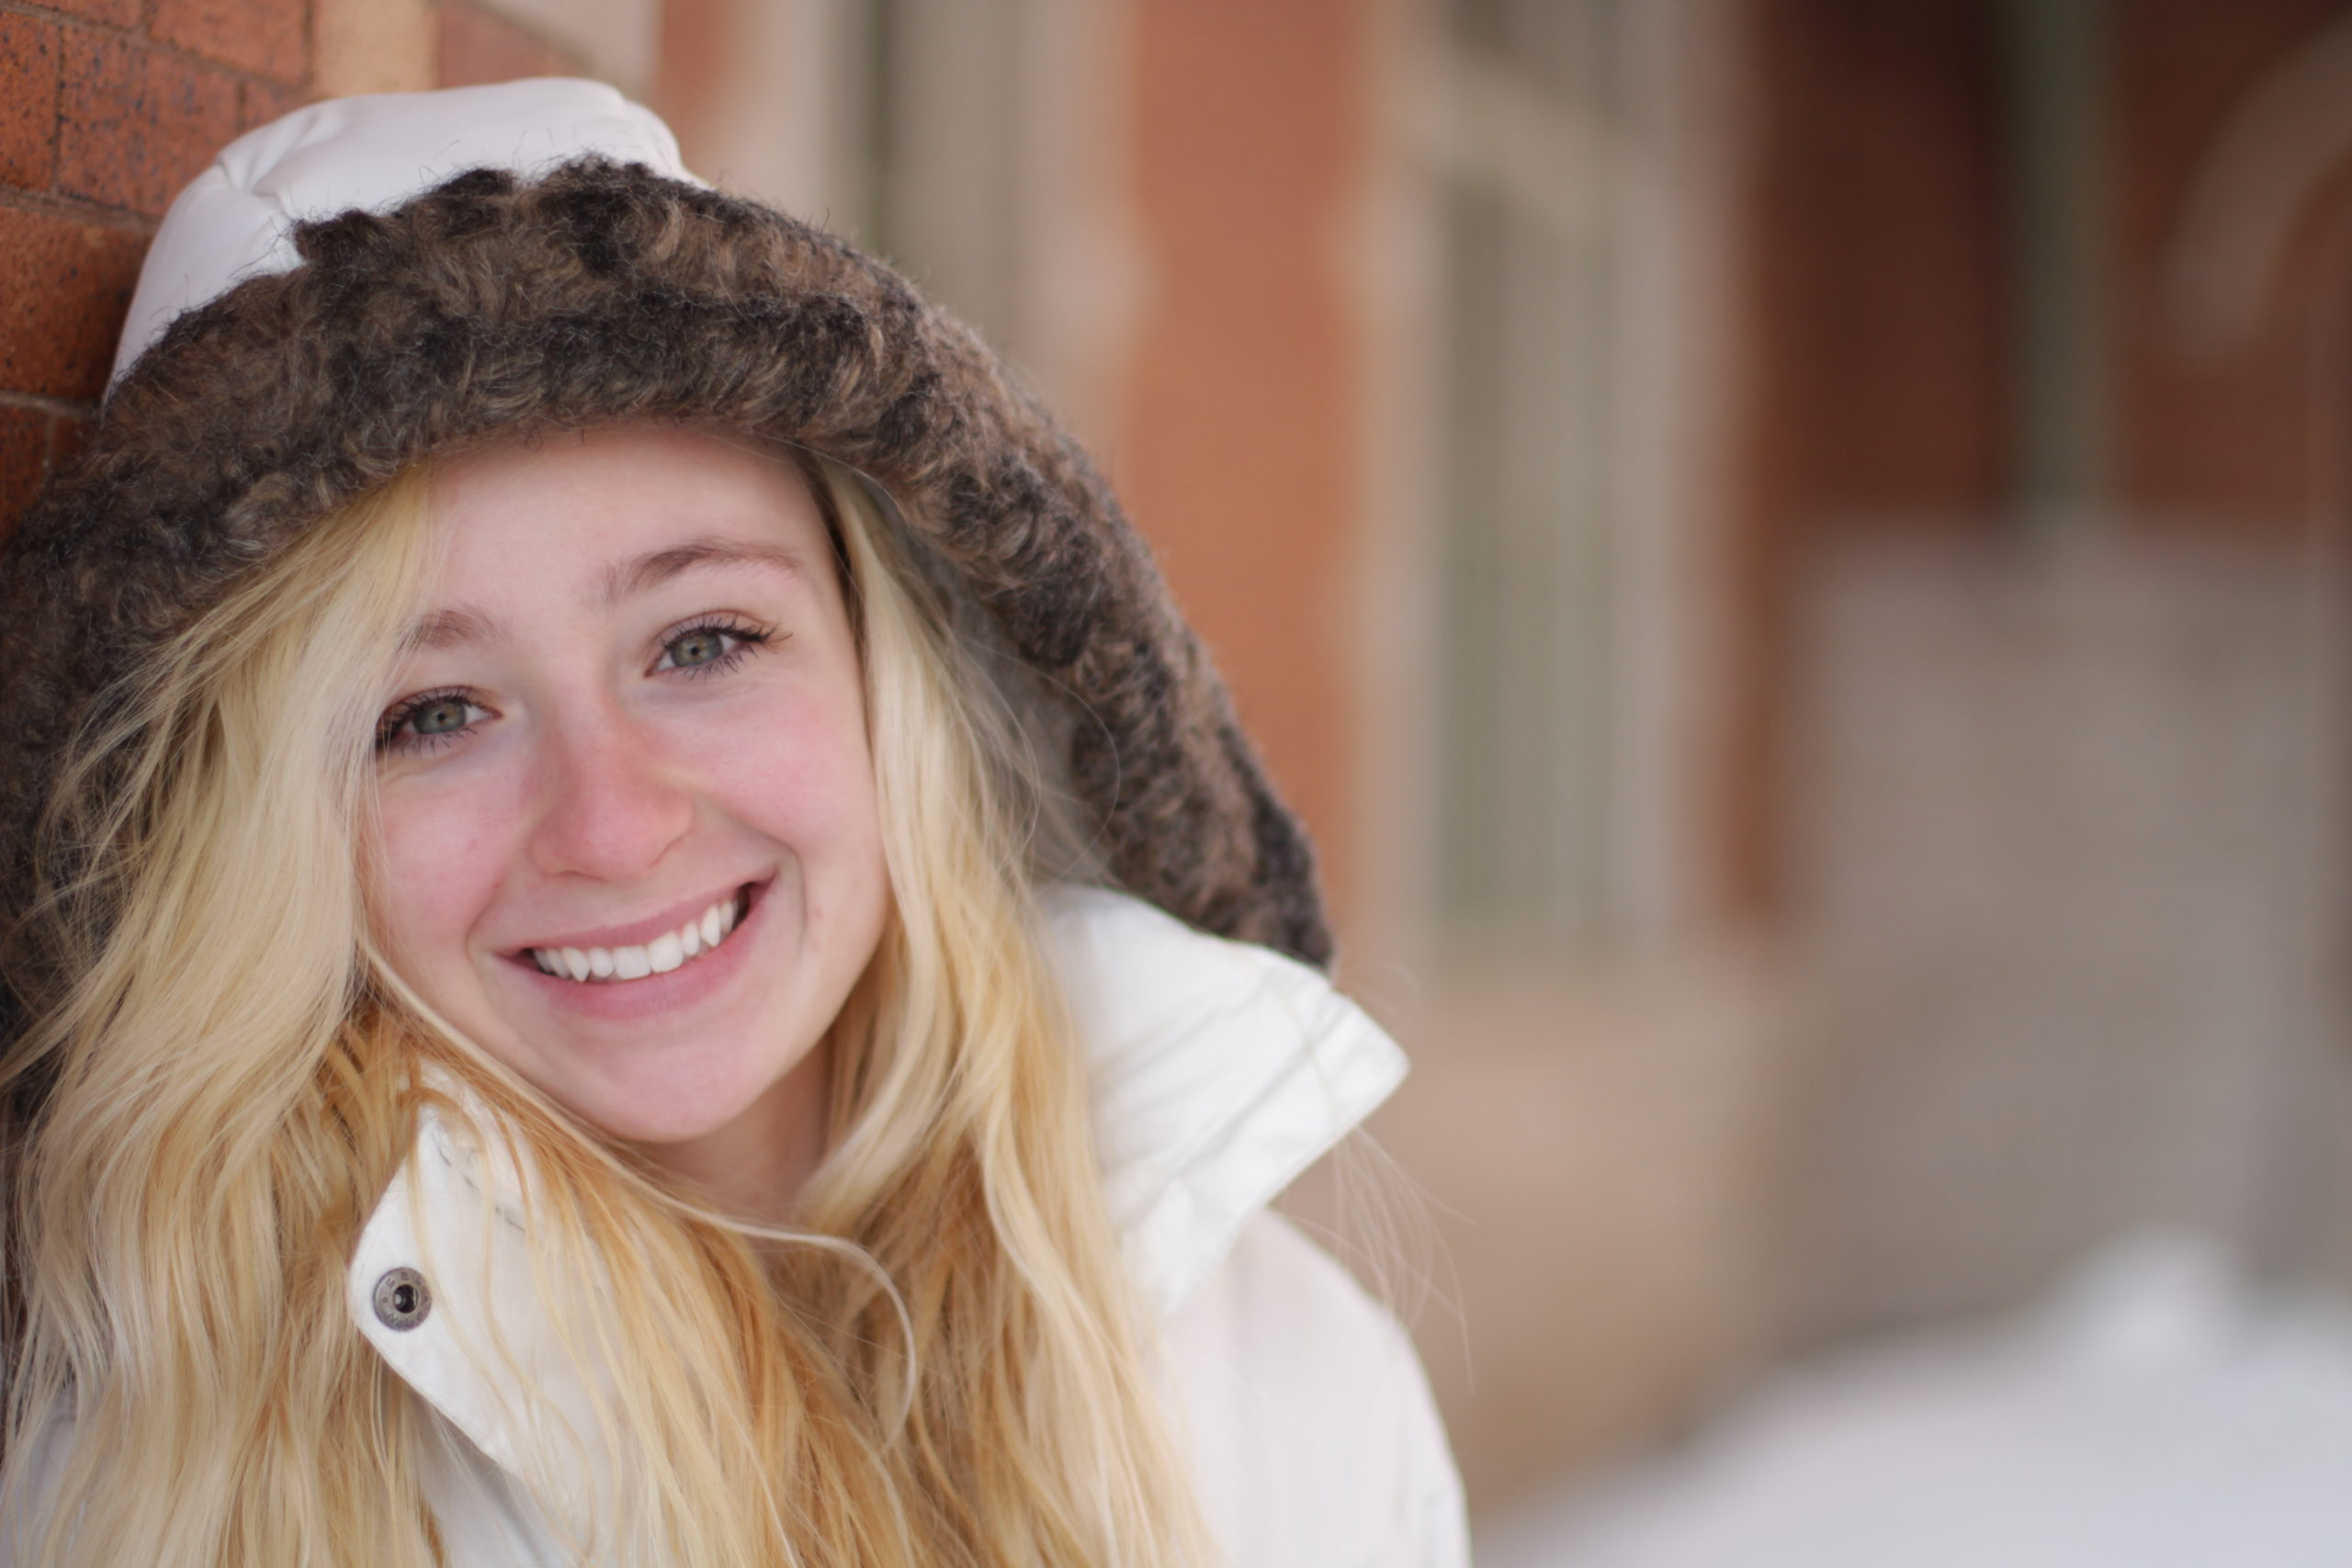 IMG_1068-scaled Skin Refinement and Snow Overlay with Senior Portraits